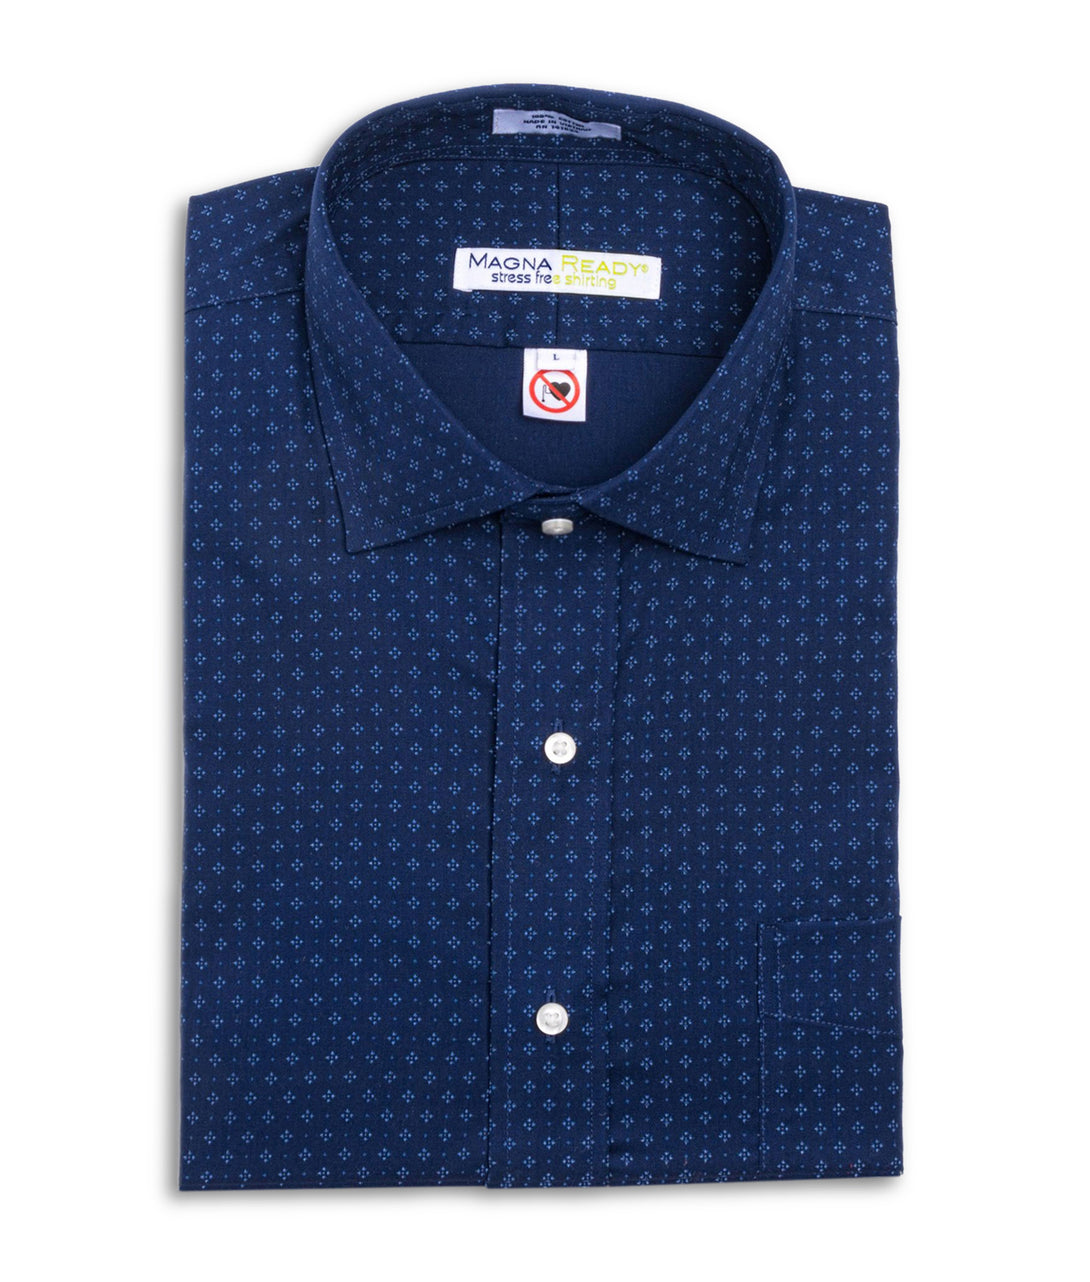 Navy and White Diamond Print Long Sleeve Dress Shirt with Magnetic Closures | JUNIPERunltd